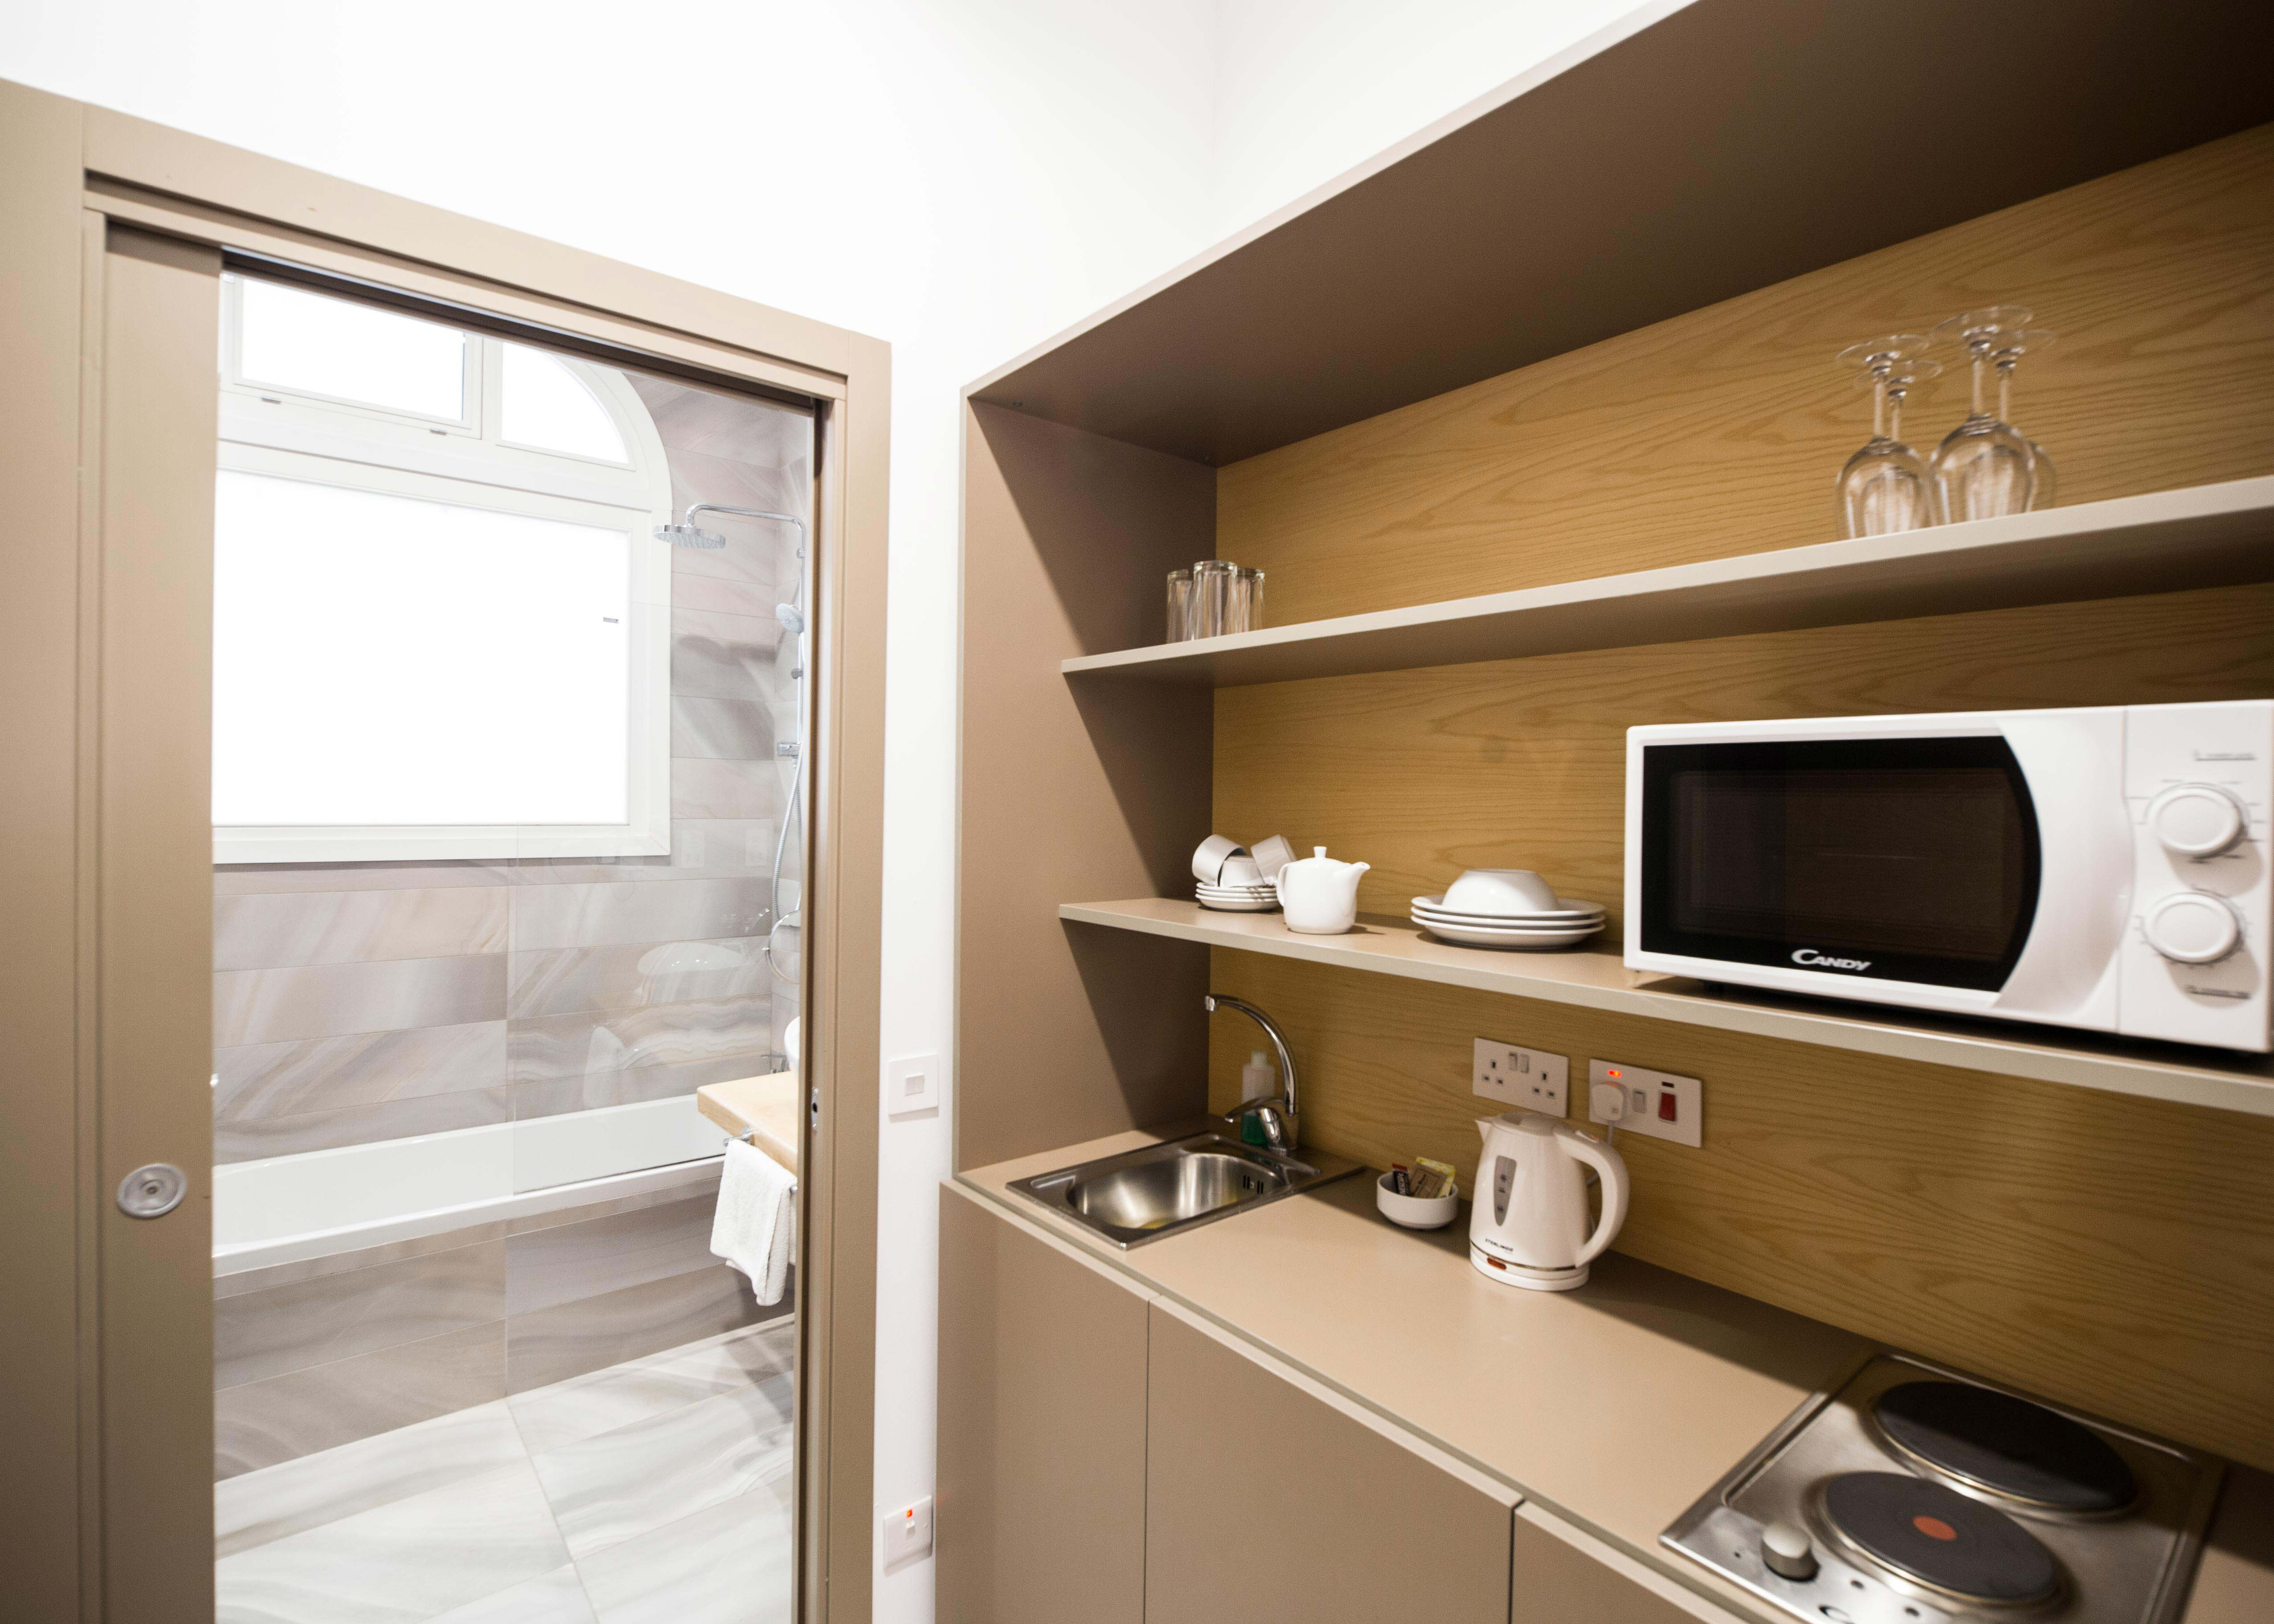 Deluxe room with kitchen, hotel for family vacation in Malta, The British Suites